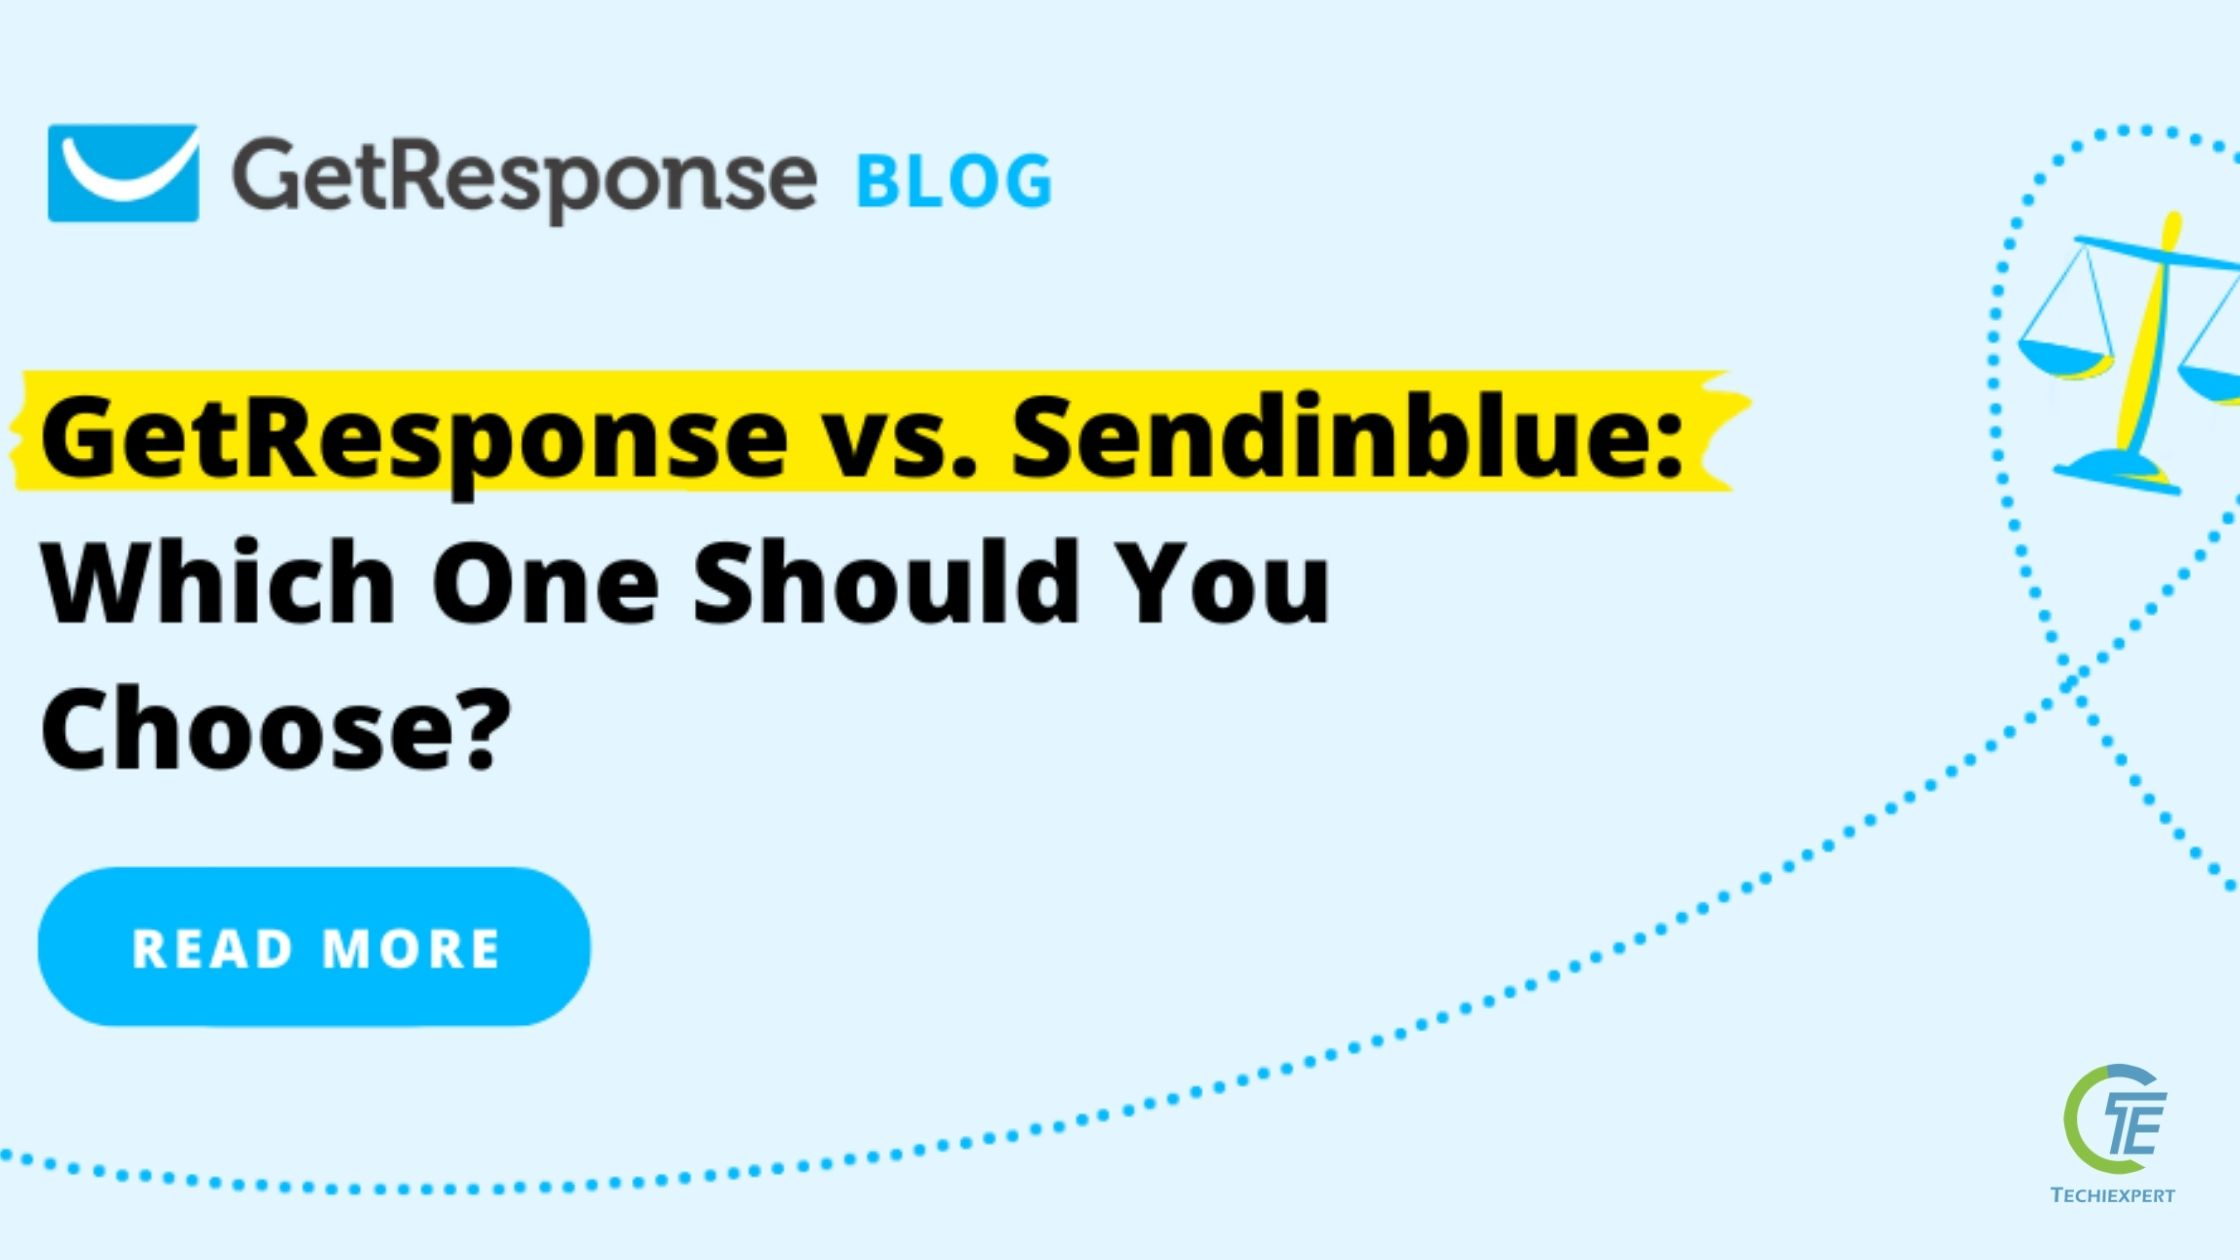 Why Choose Get Response for your Inbound Marketing? 3